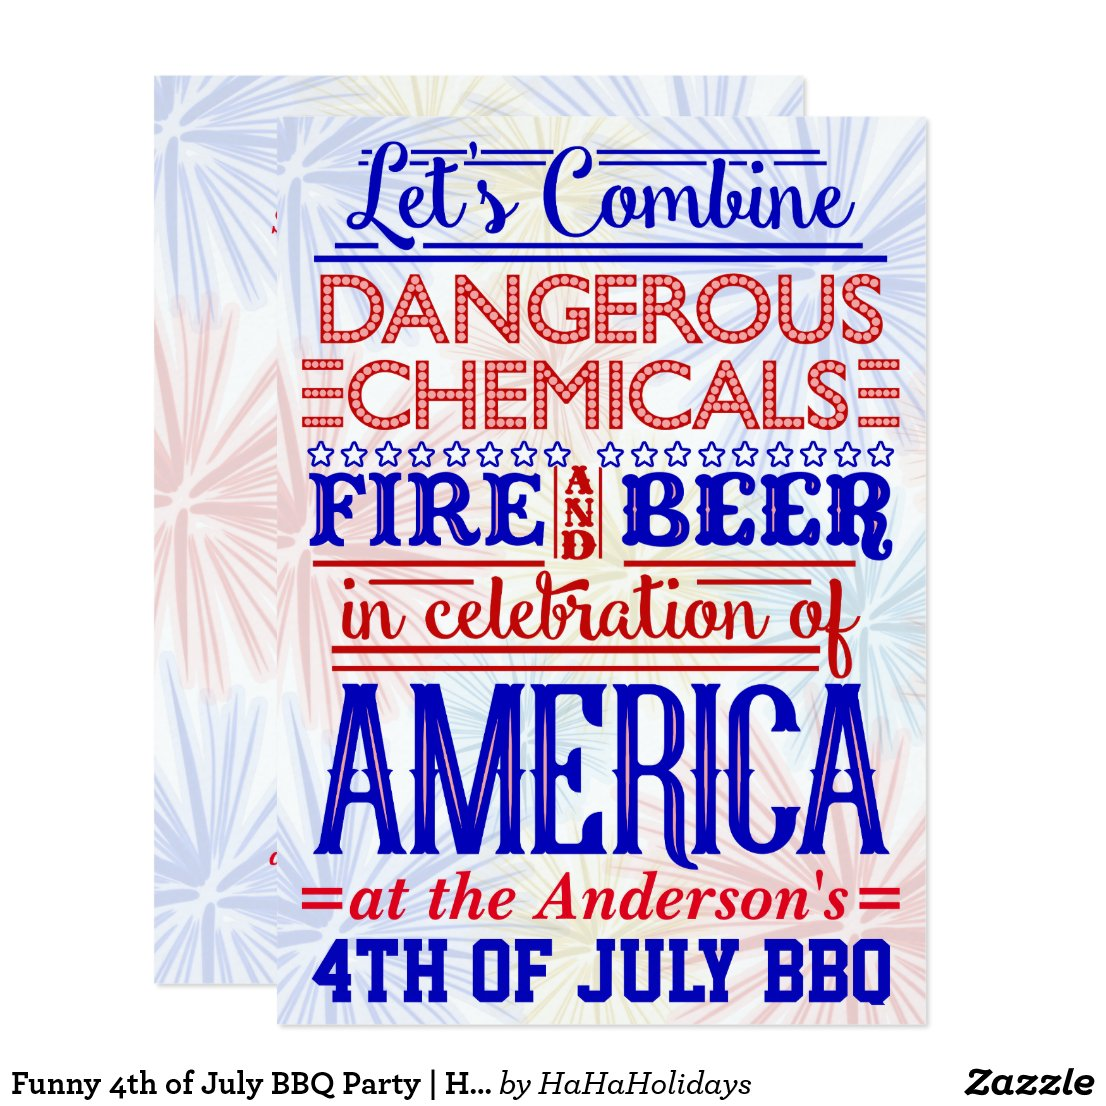 Funny 4th of July BBQ Party | Humorous Barbecue Card